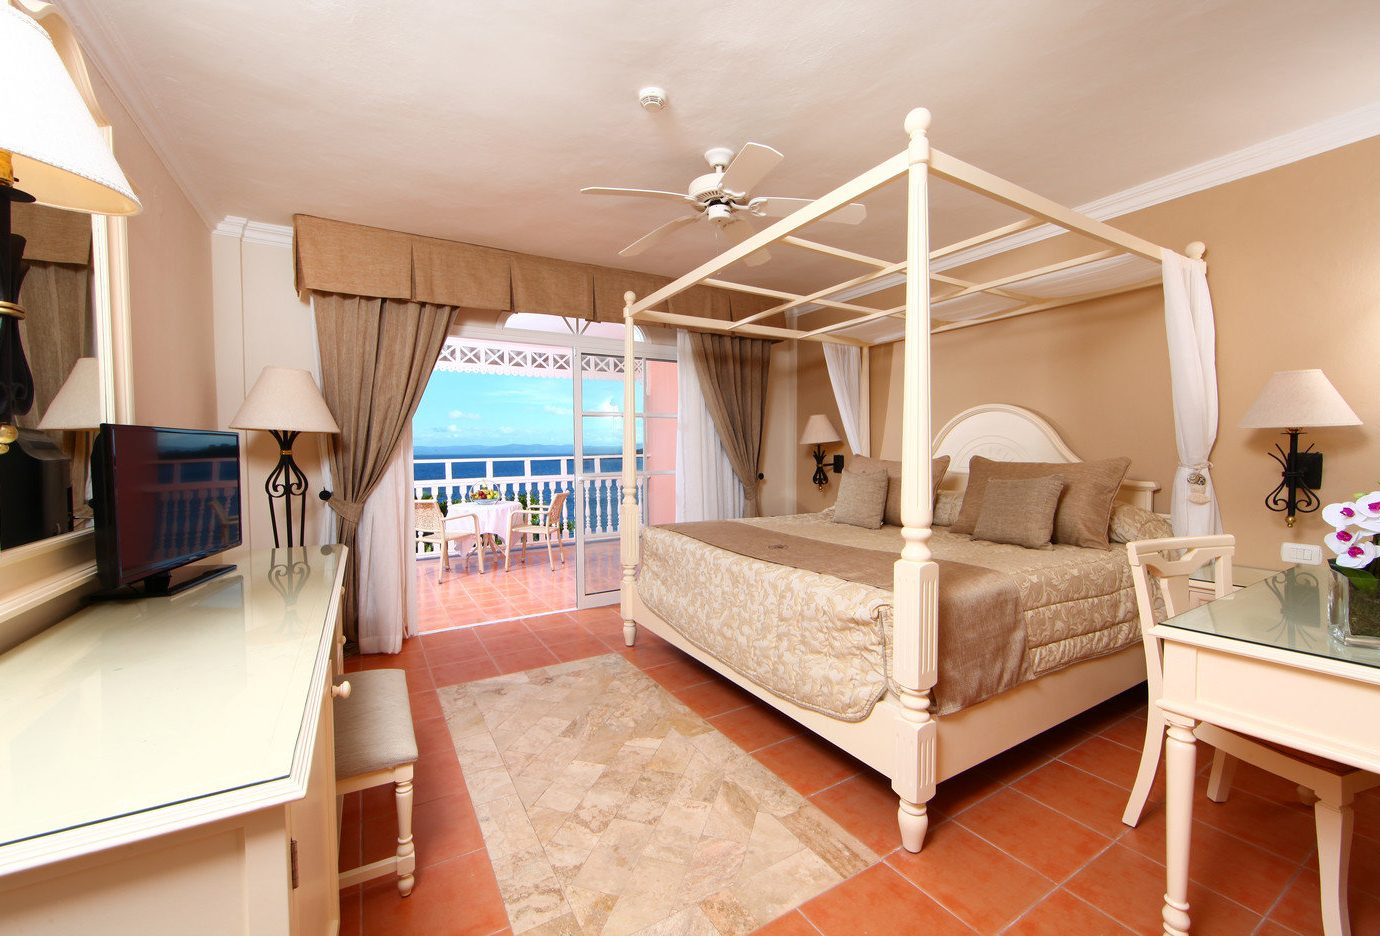 All-Inclusive Resorts Budget caribbean Hotels floor indoor wall room ceiling real estate Bedroom interior design estate Suite furniture